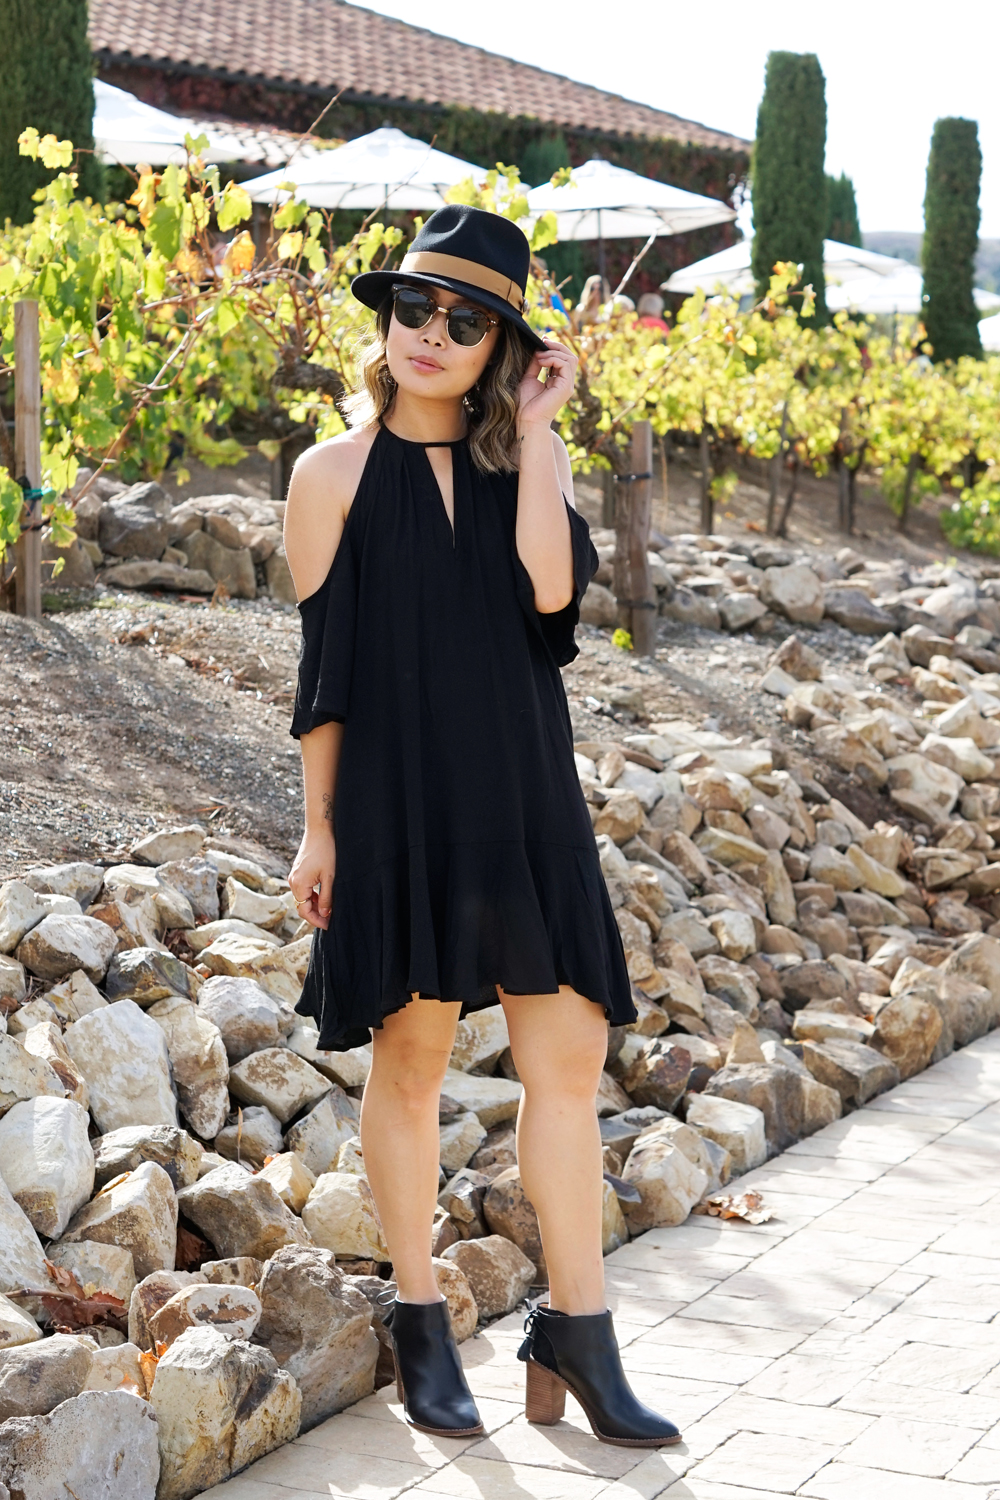 04winery-travel-style-fashion-goorinbros-azalea-madewell